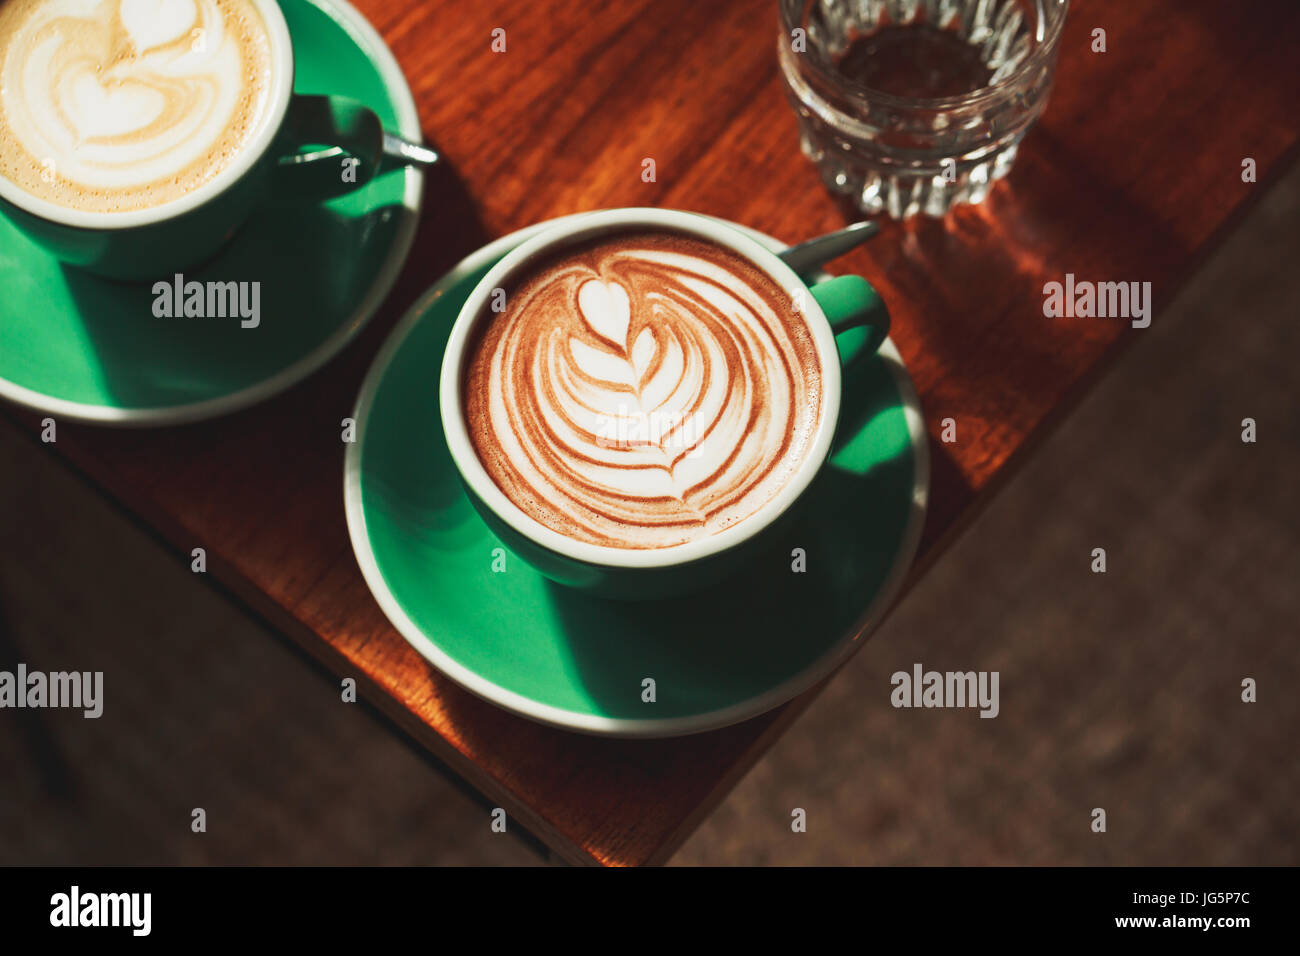 Cup of cappuccino with latte art - Stock Image